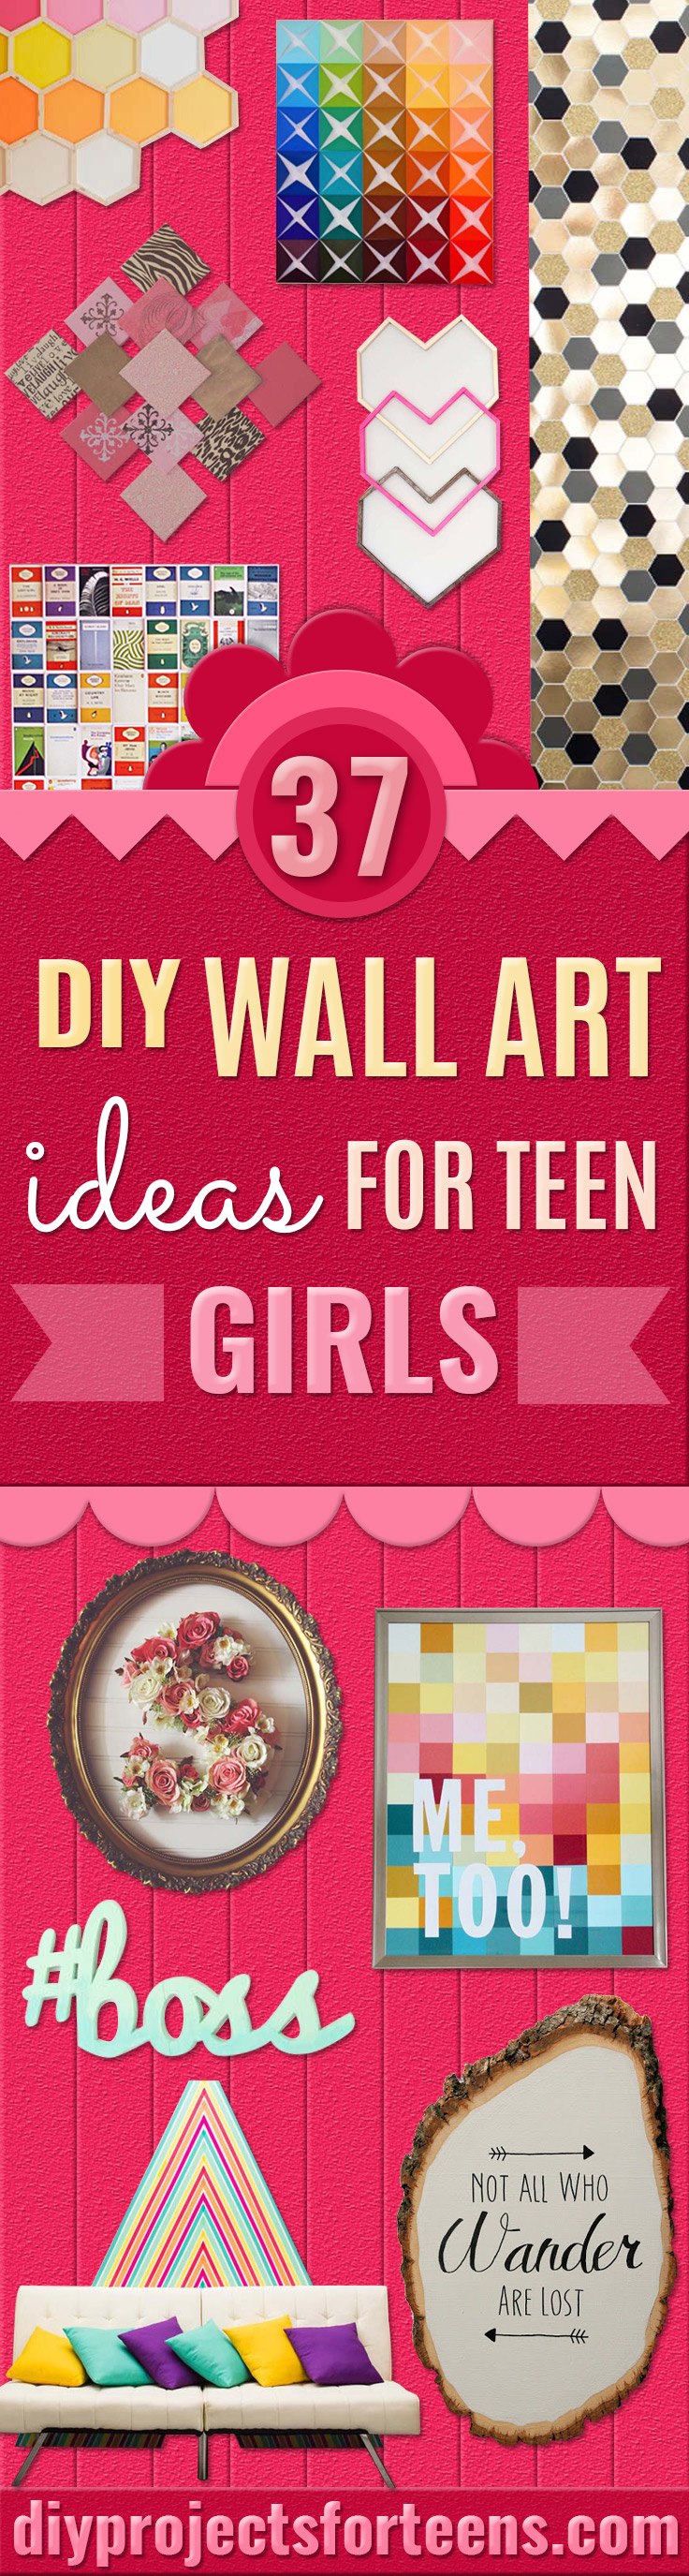 37-diy-wall-art-for-teen-girls-2